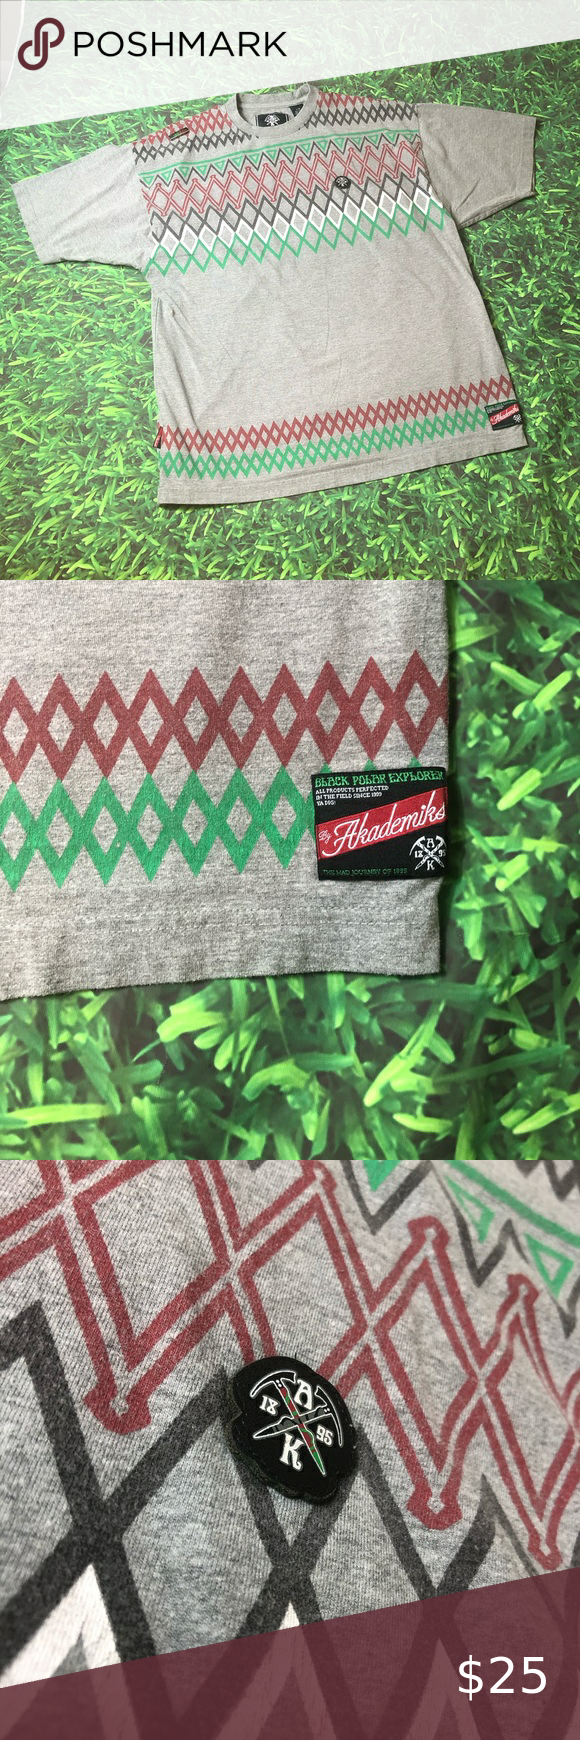 Vintage Akademiks Polar Explorer T-Shirt Green Red This item is preowned and may show signs of wear that being said this item is in great condition for its age minor screen print cracking and minor cracking on tag on shoulder shown in pictures very rare tee Akademiks Shirts Tees - Short Sleeve